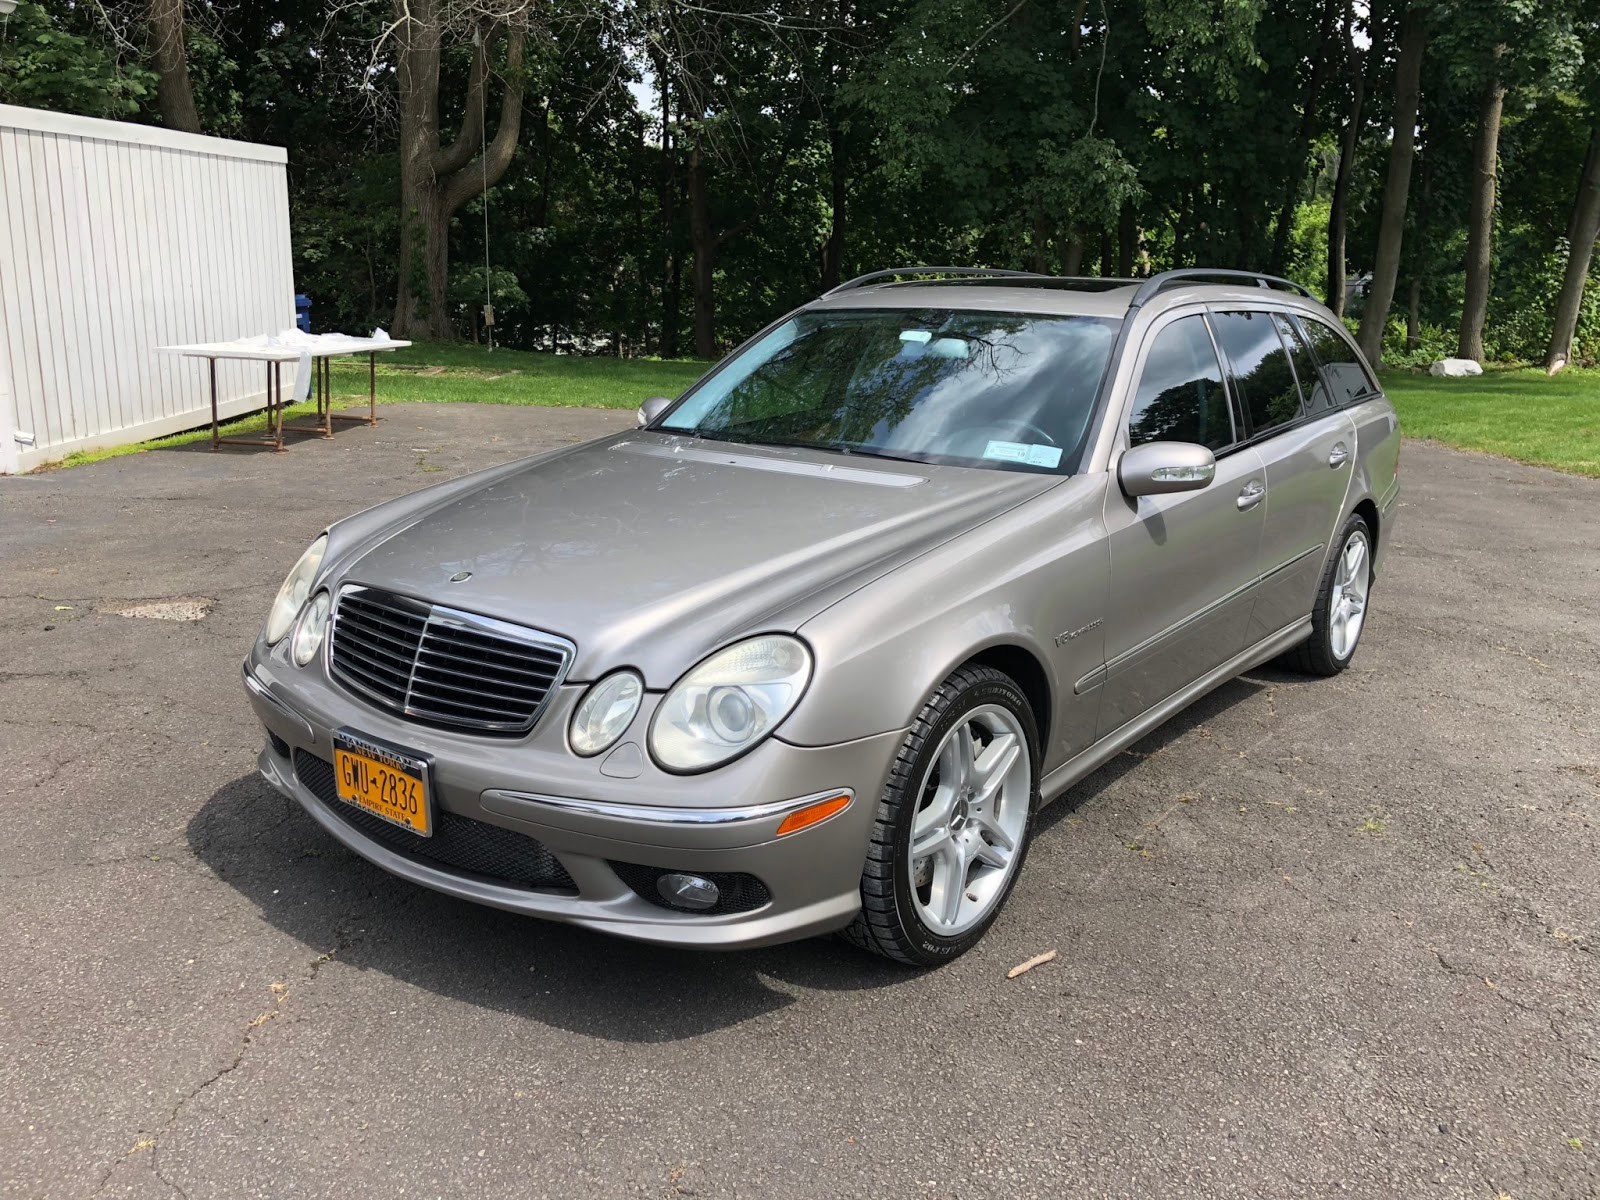 MERCEDES BENZ E55 AMG WAGON 2005